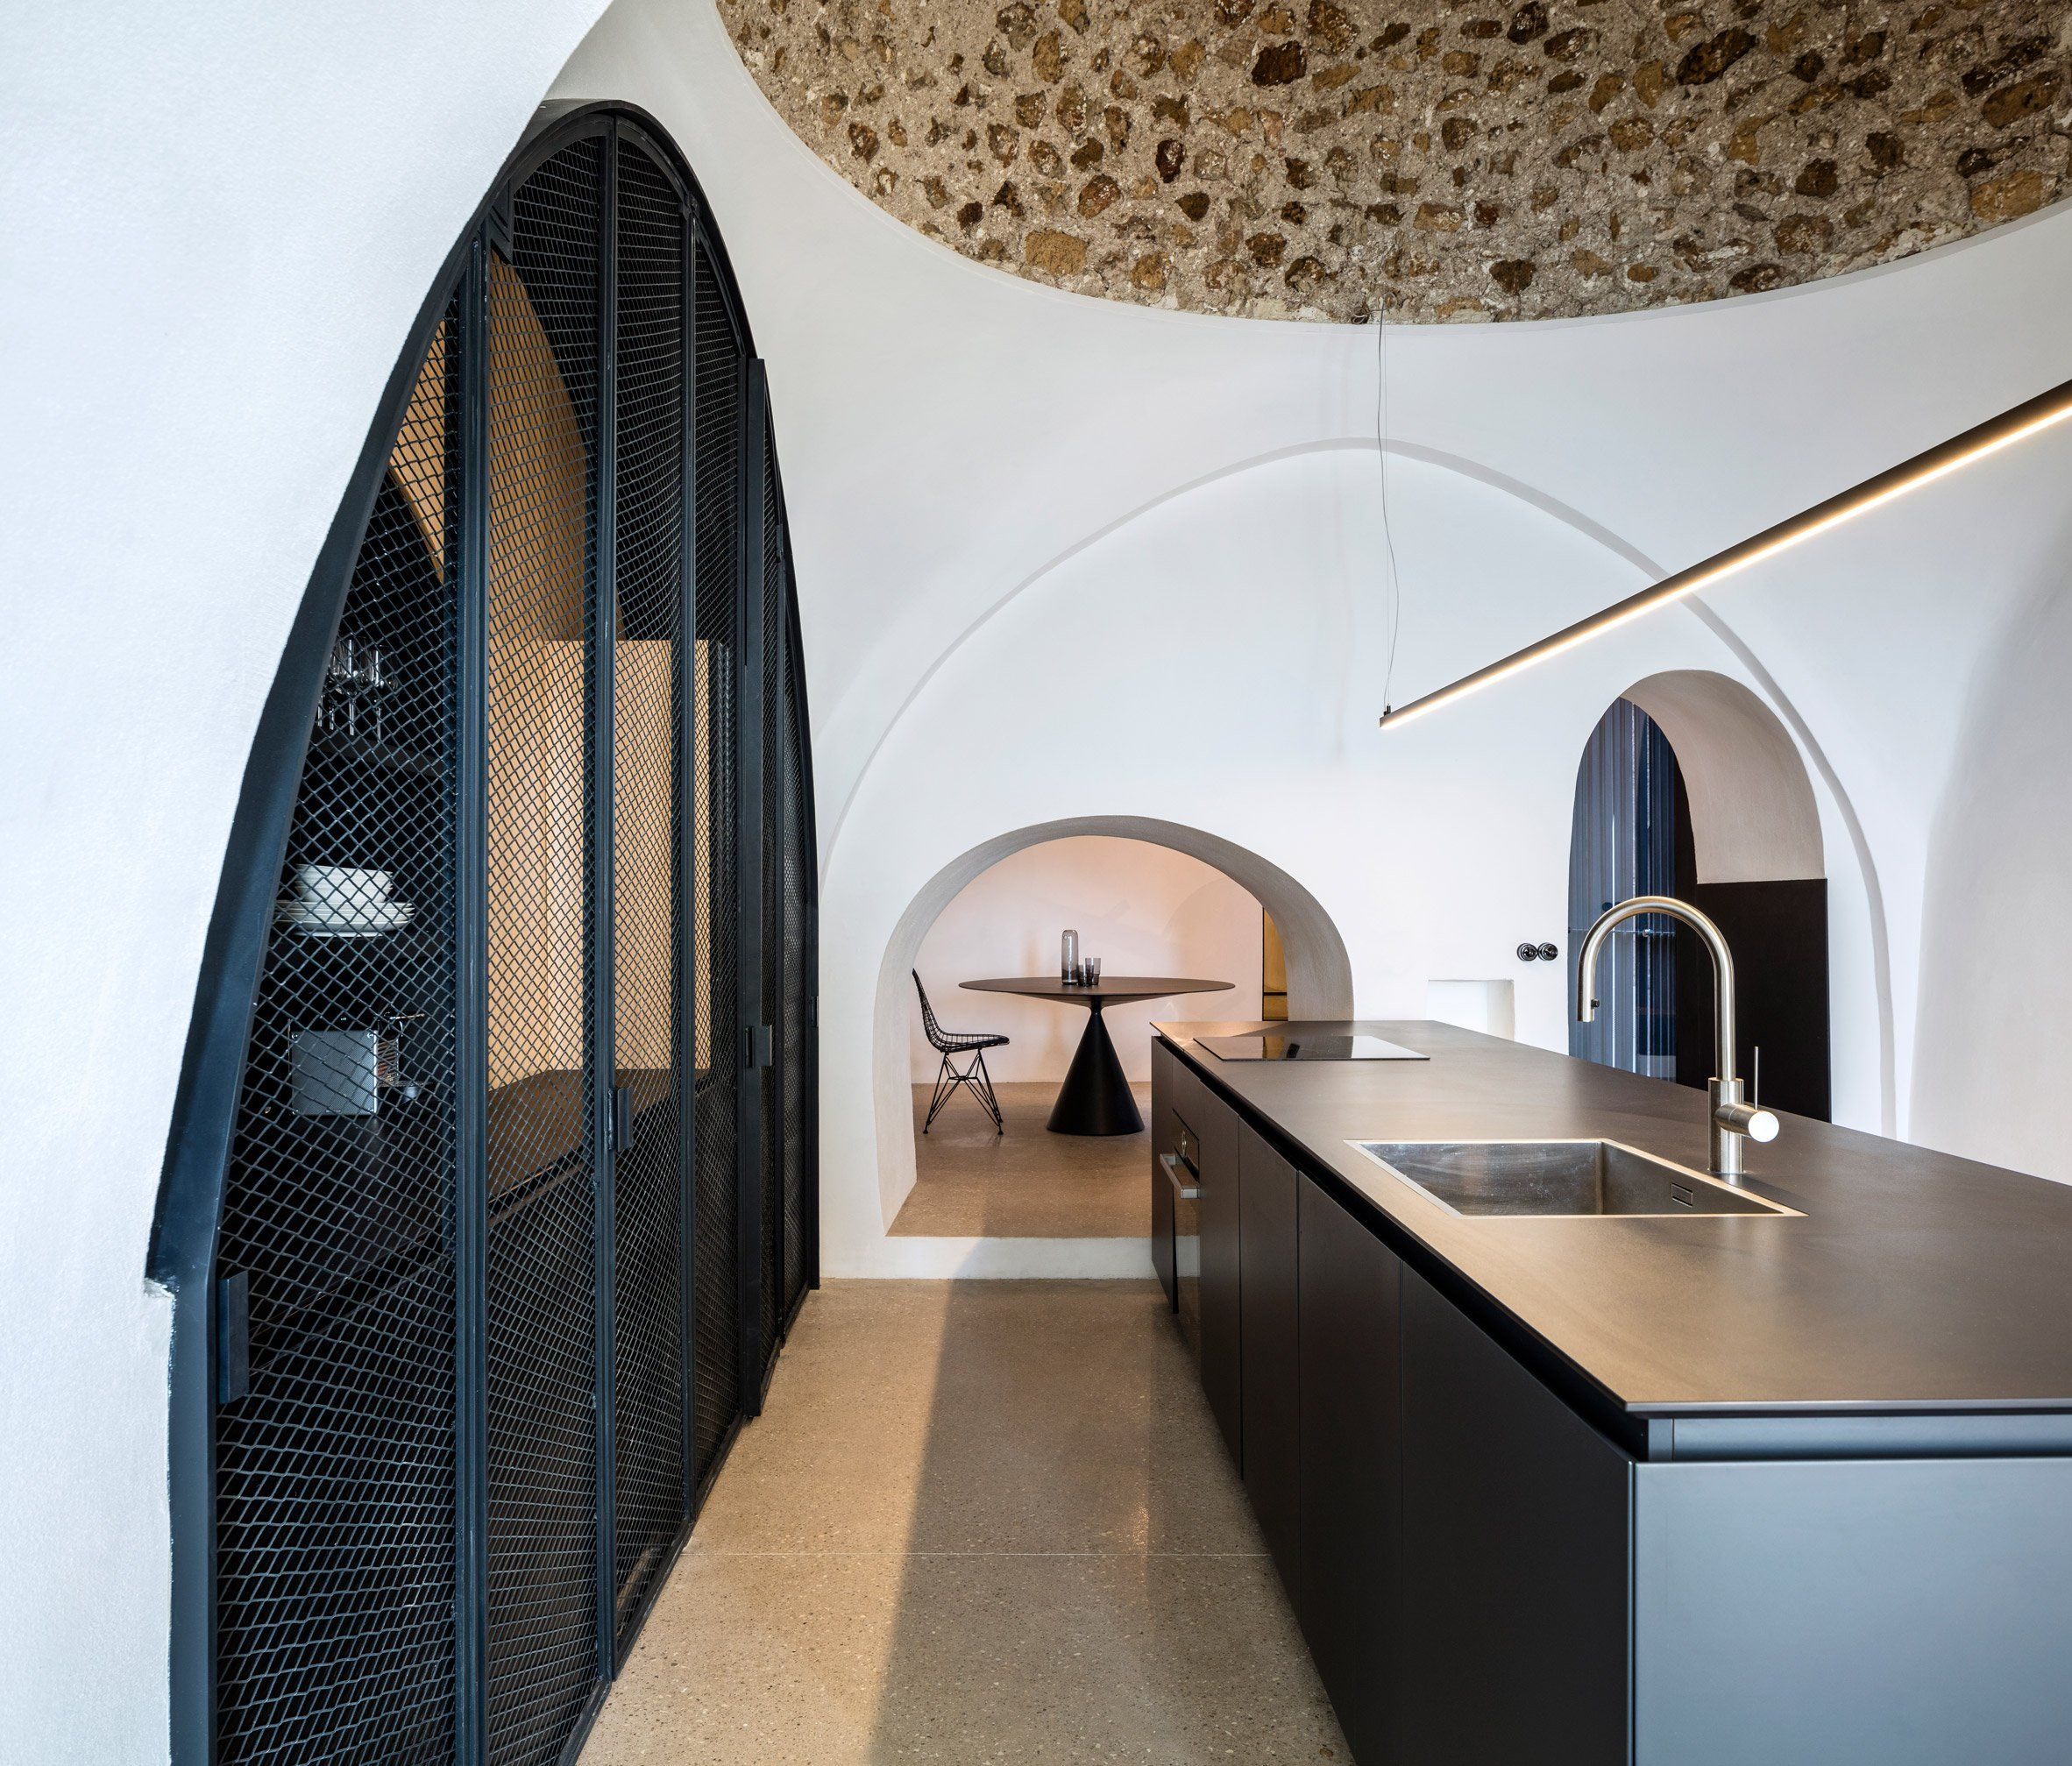 Pitsou kedem has updated an apartment in the ancient port of jaffa tel aviv adding arched windows and door frames to echo the vaulted ceiling